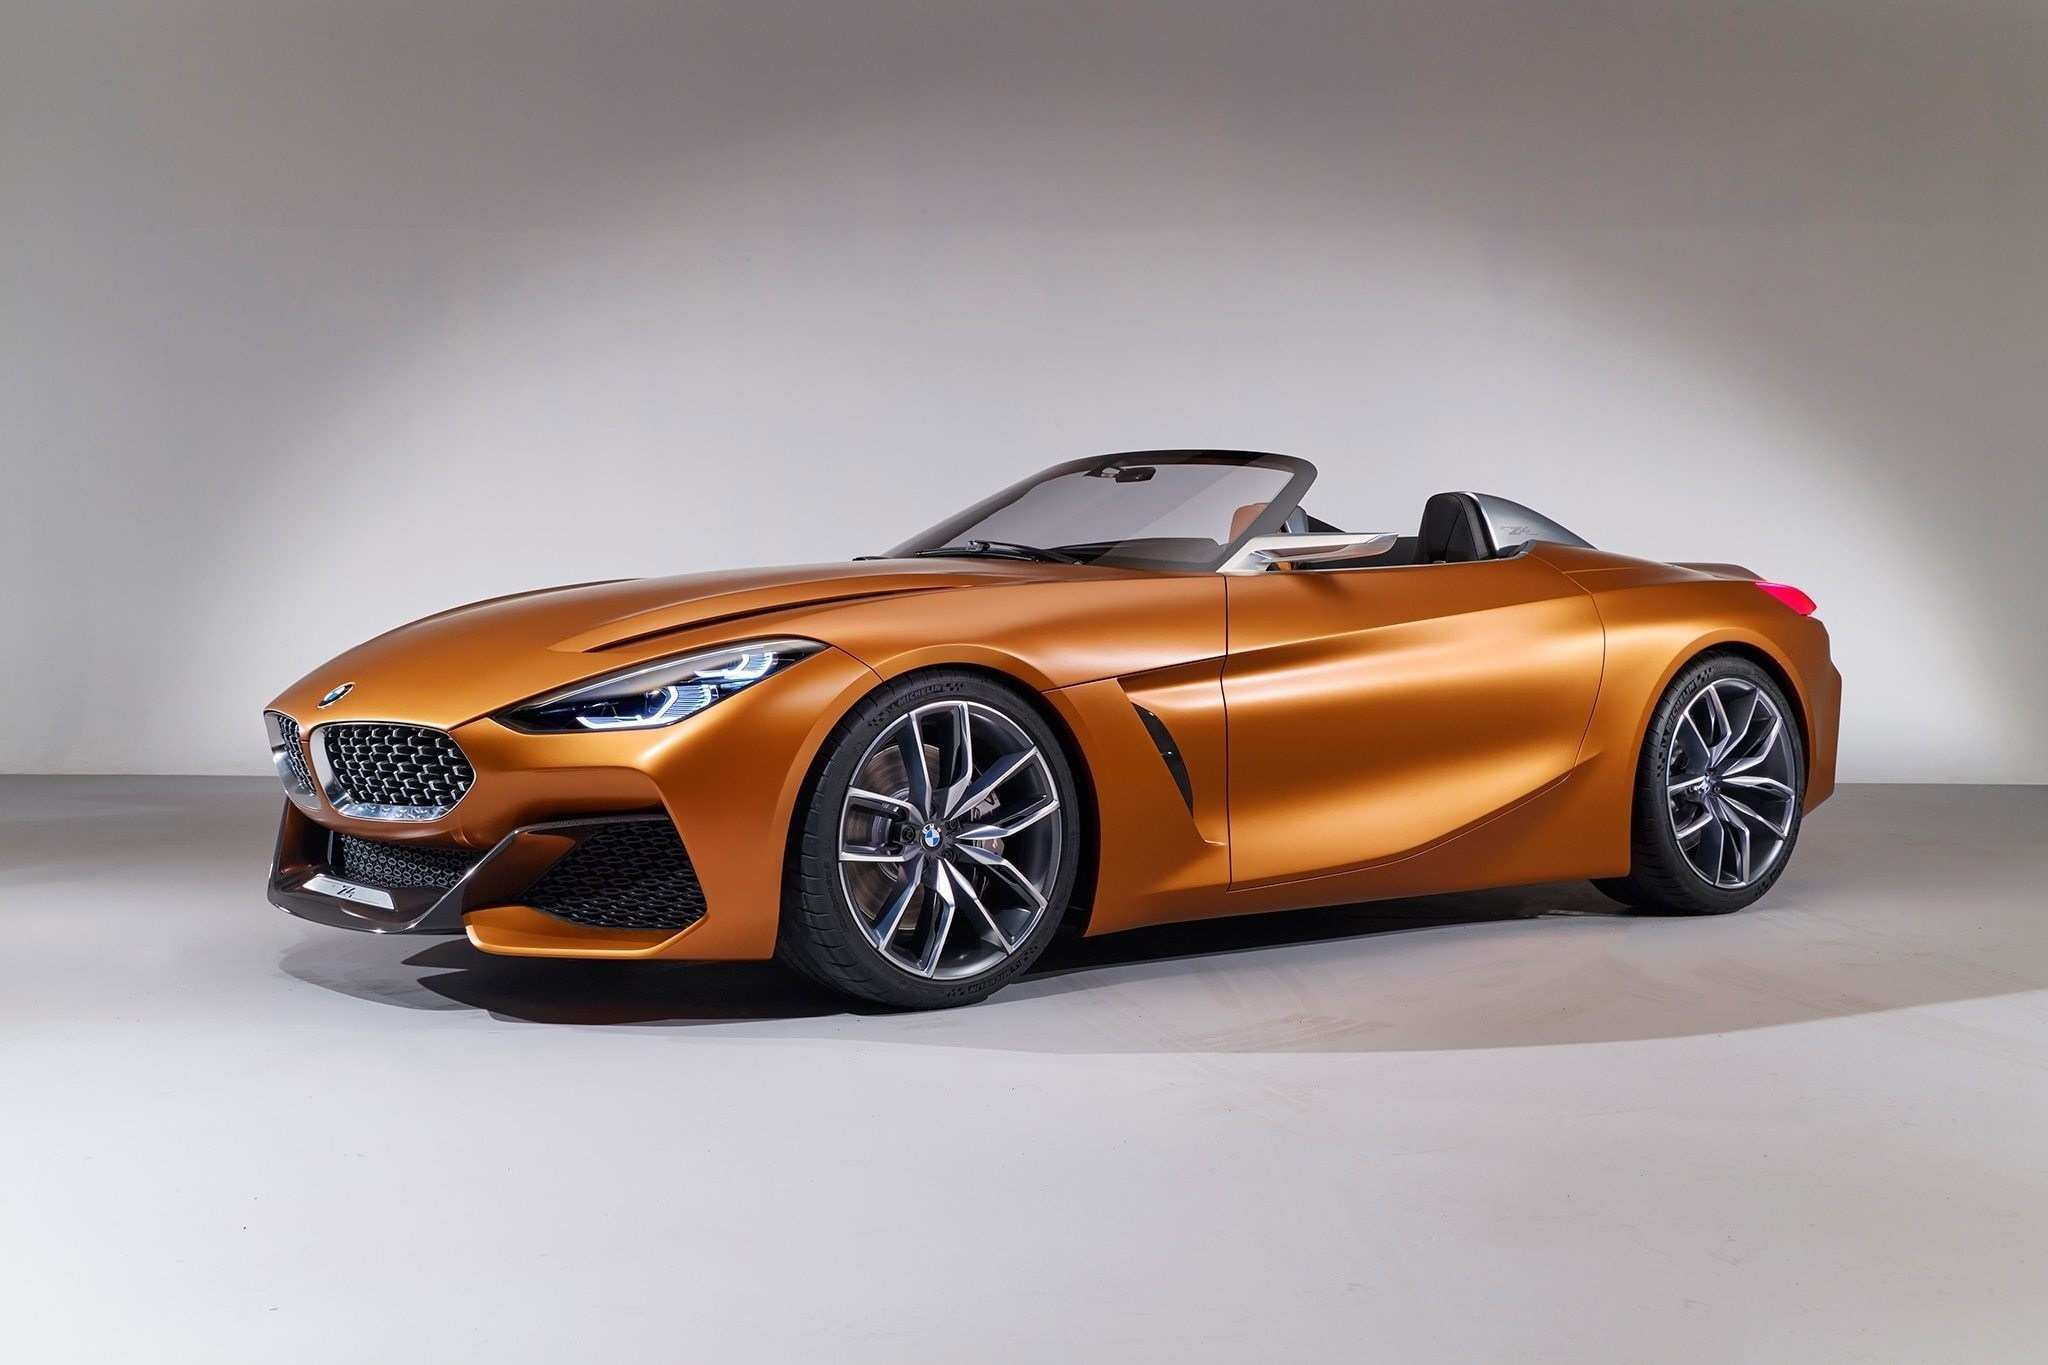 82 Concept of Bmw 2019 Z4 Price Price And Release Date History for Bmw 2019 Z4 Price Price And Release Date